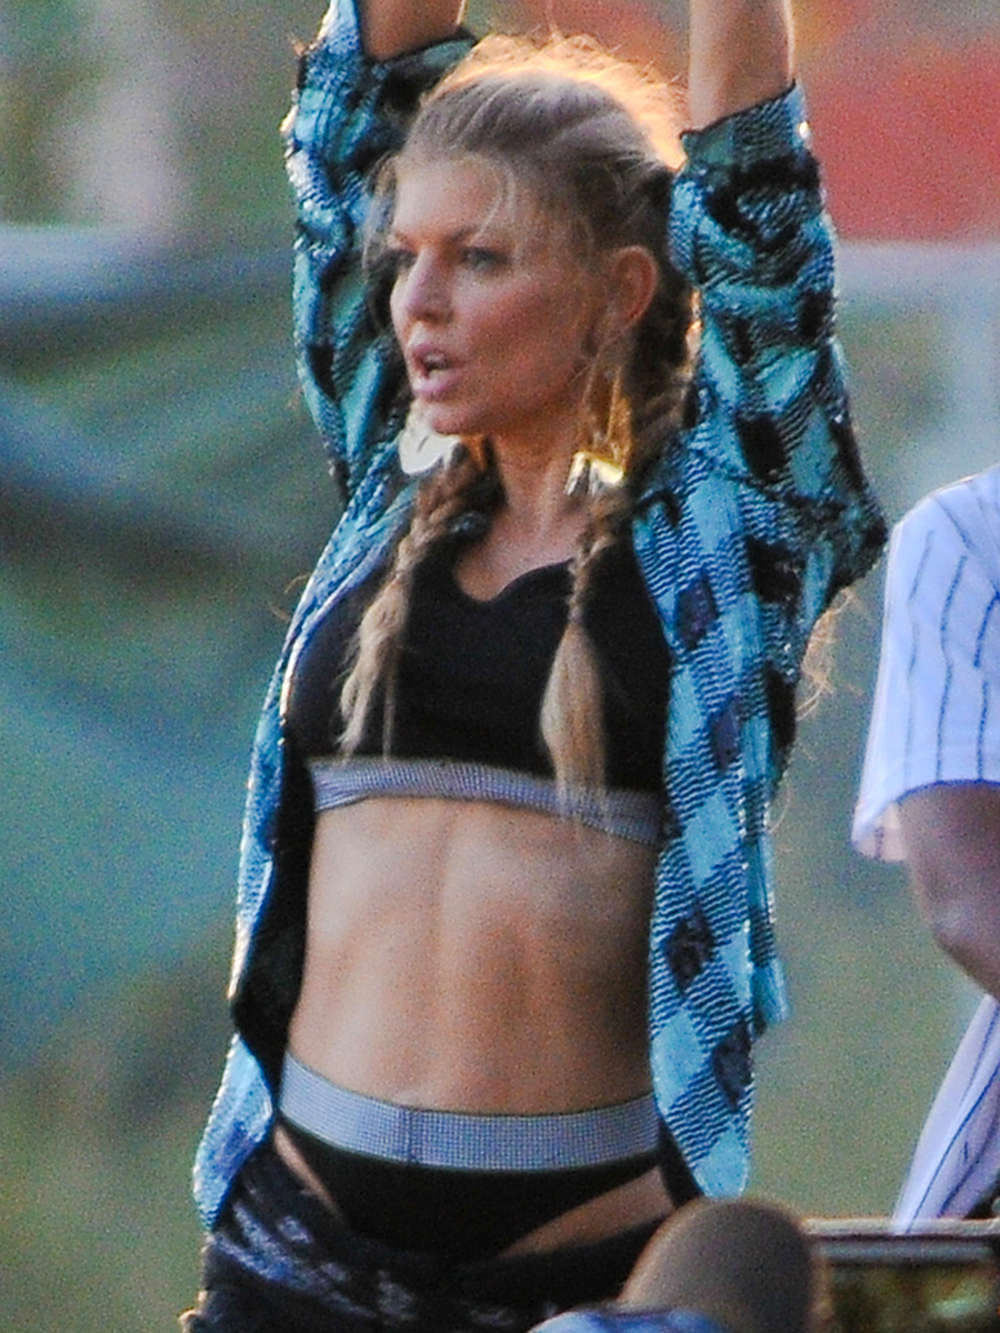 Fergie Filming a Music Video -10 - GotCeleb Fergie Songs